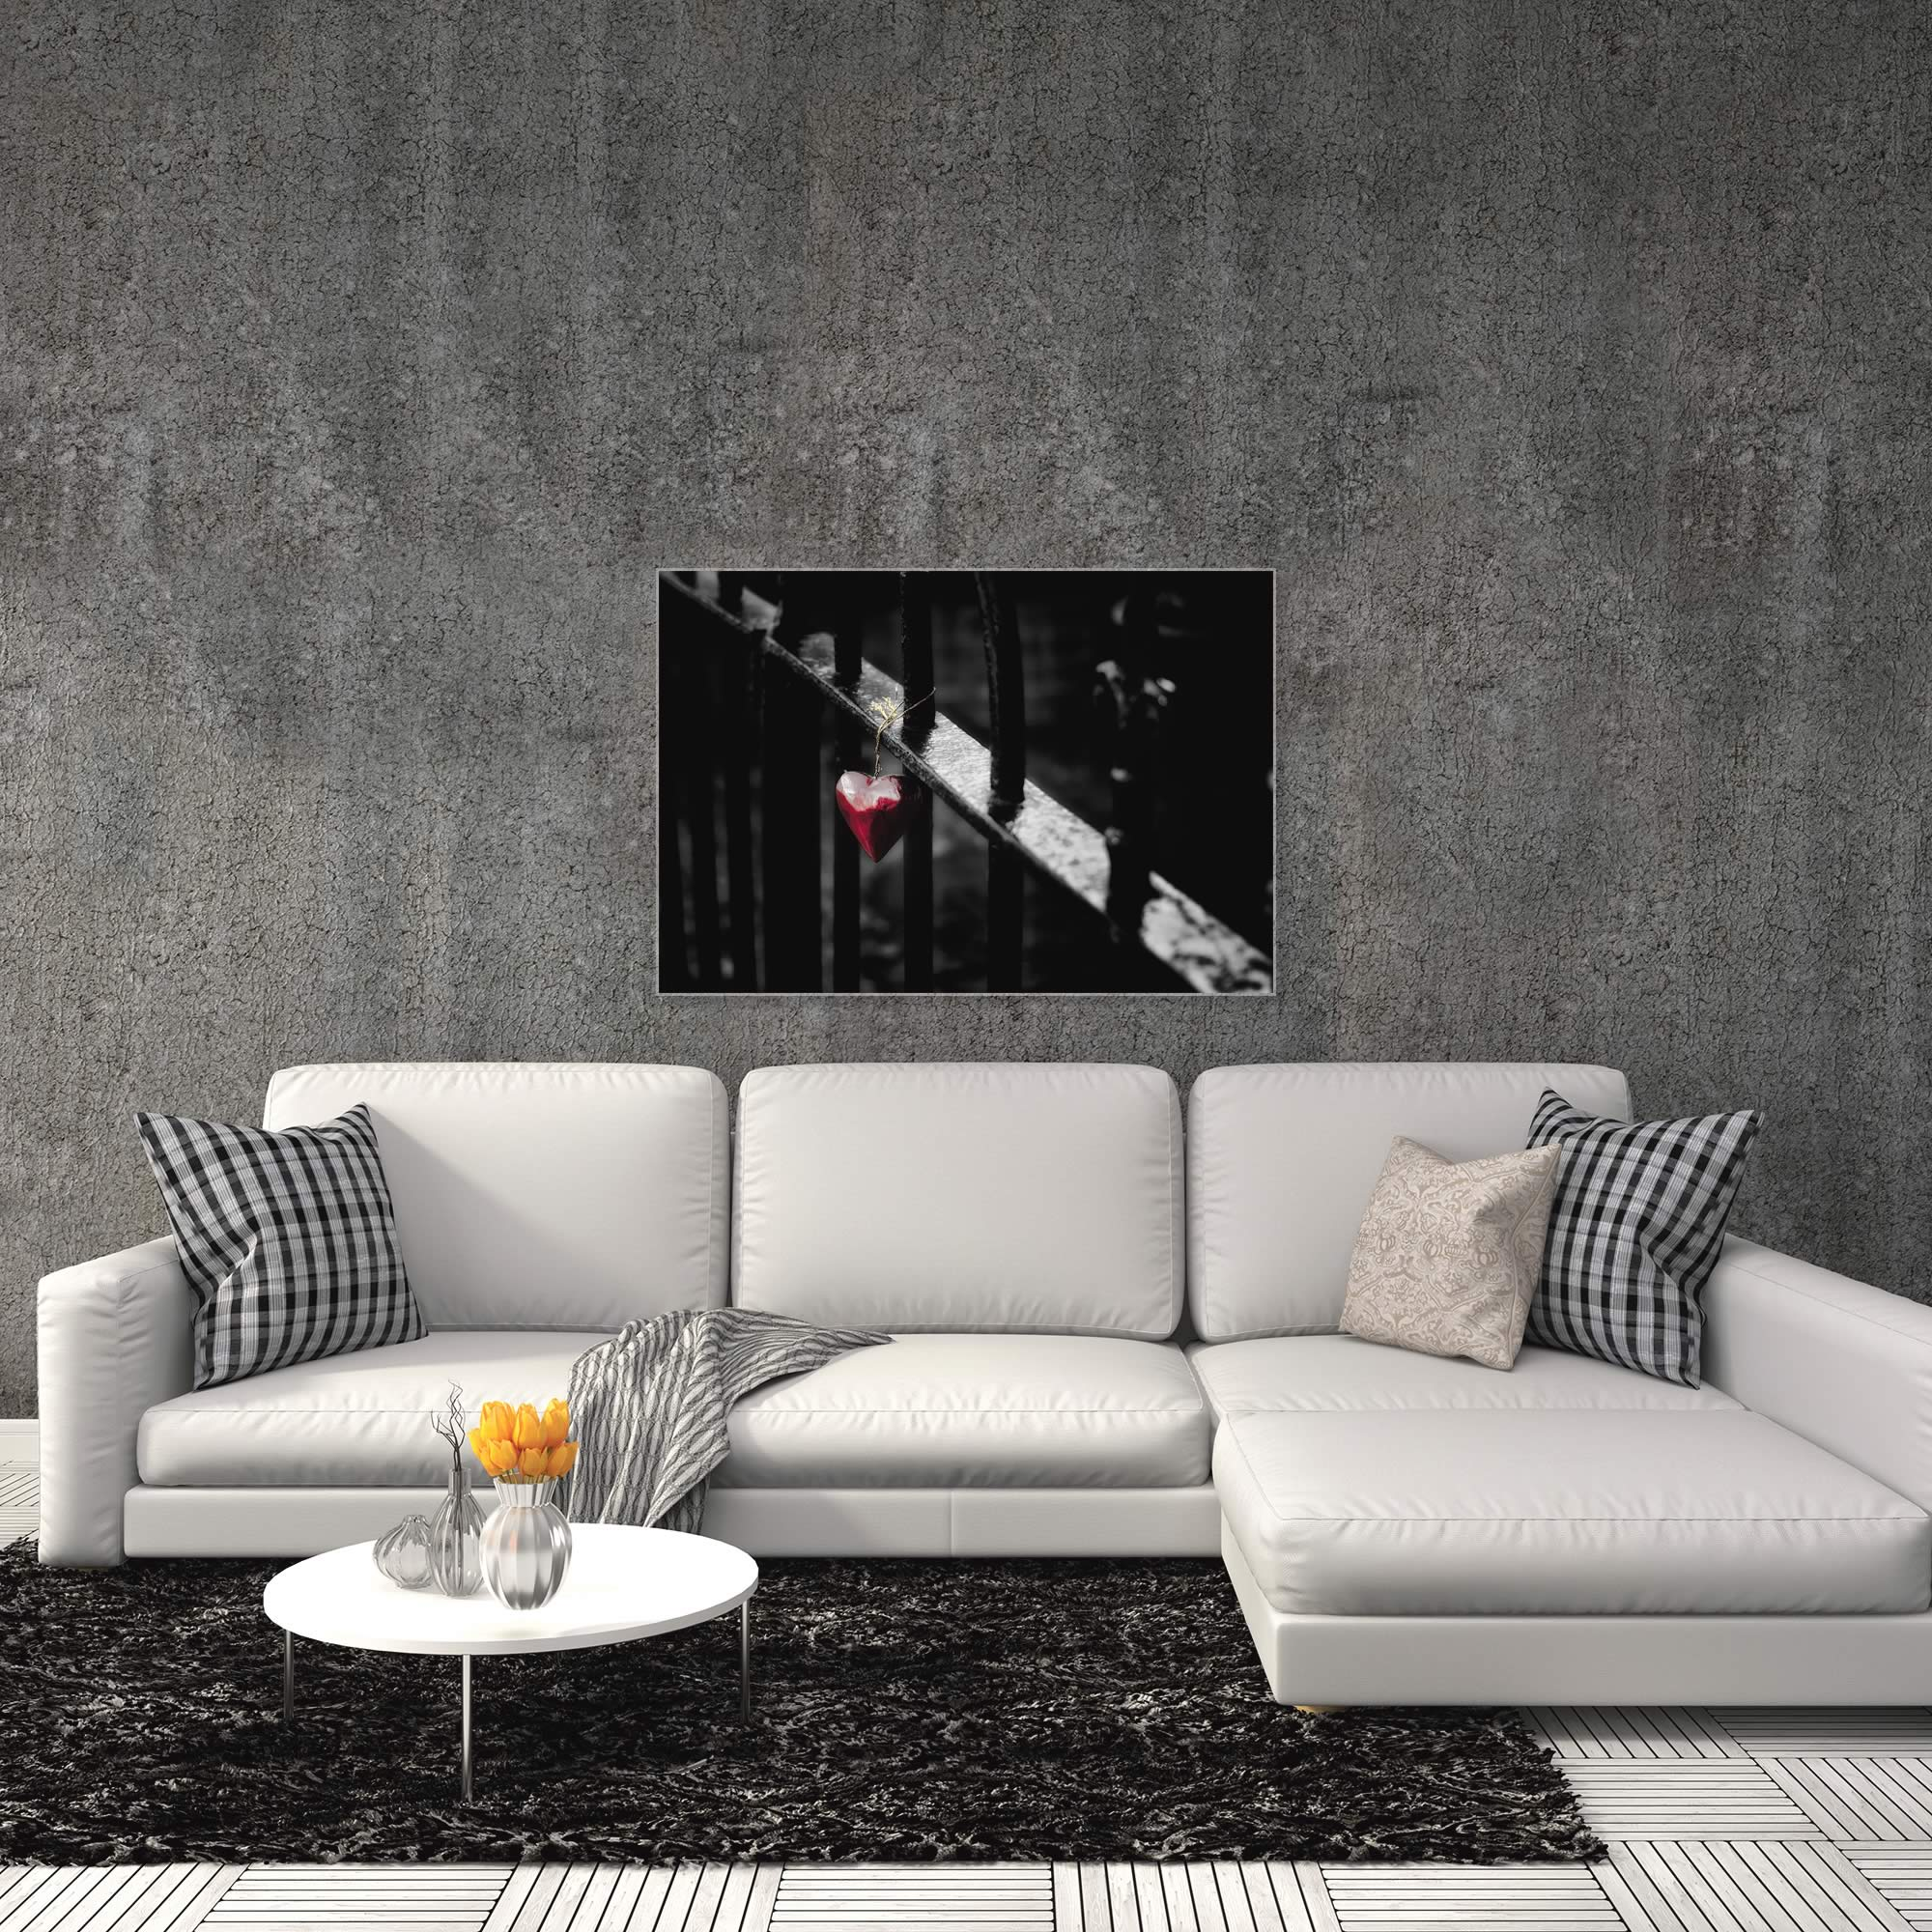 Lonely Heart by Richard Bland - Emotional Art on Metal or Acrylic - Alternate View 3